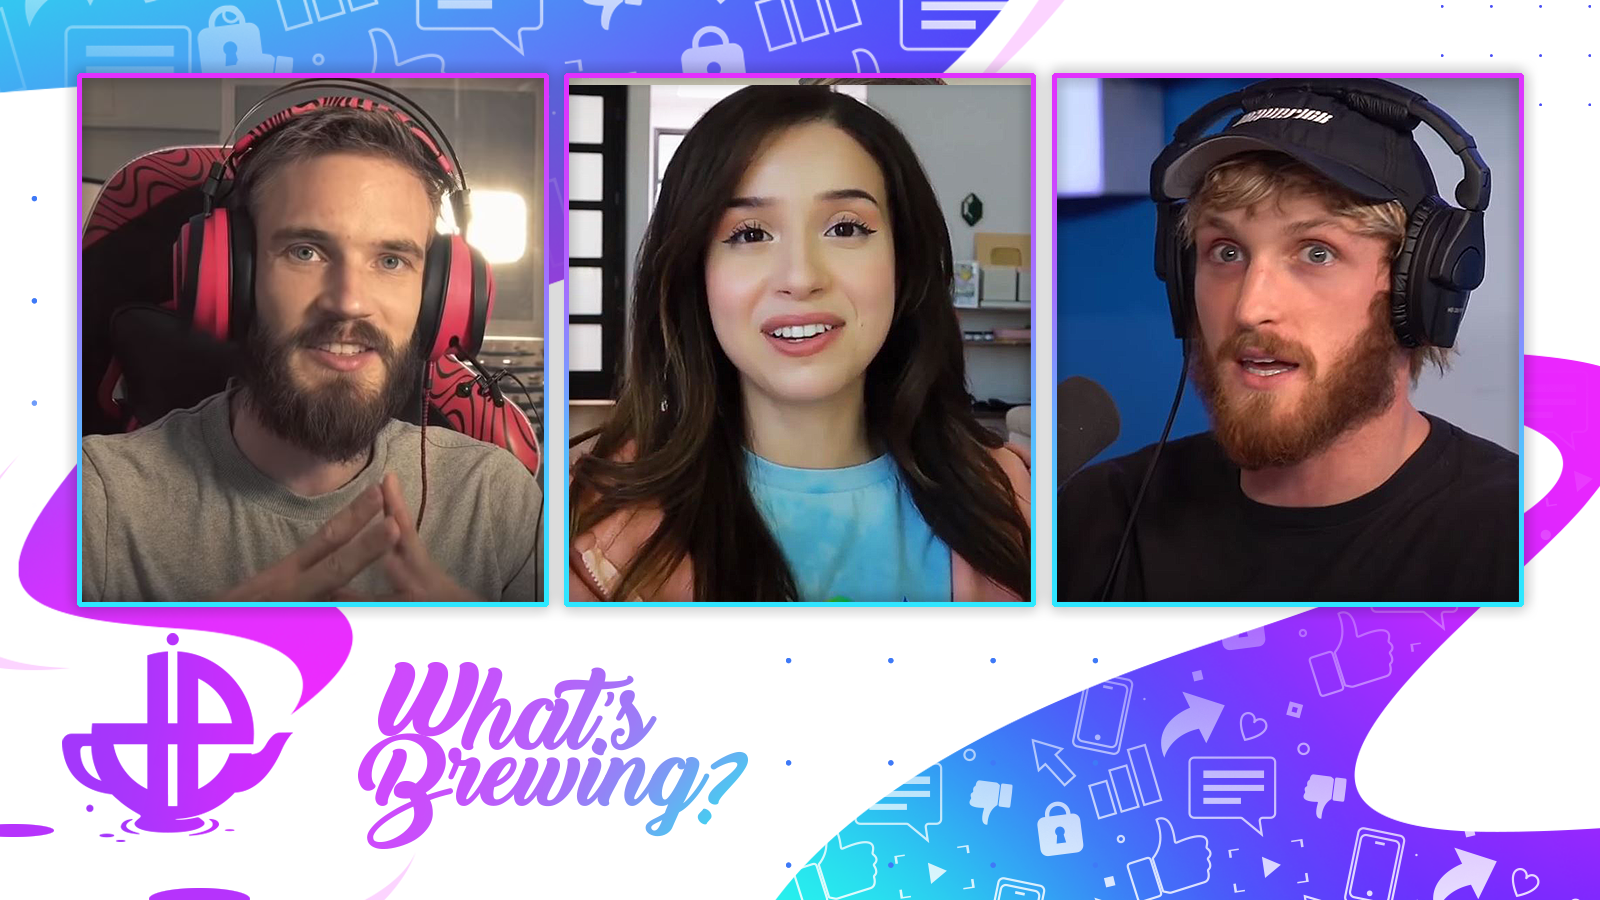 PewDiePie, Pokimane and Logan Paul sit side by side on the What's Brewing logo.